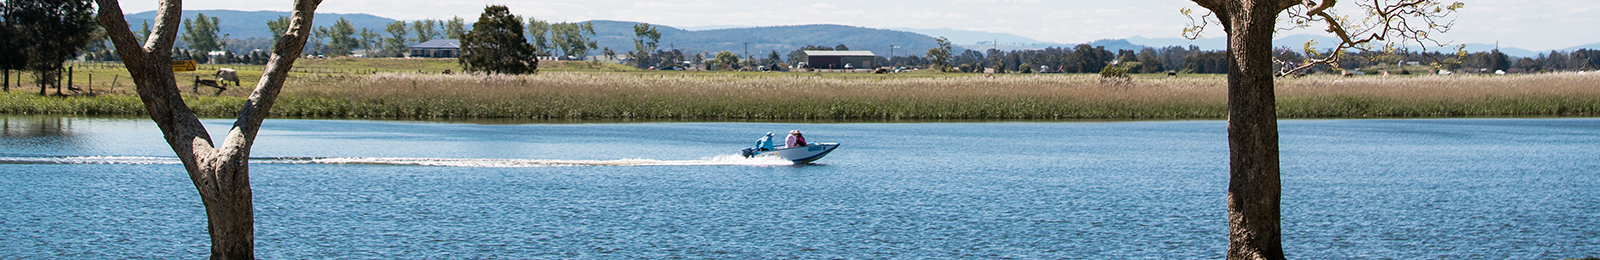 Image of a jet boat on river in Nelson Bay